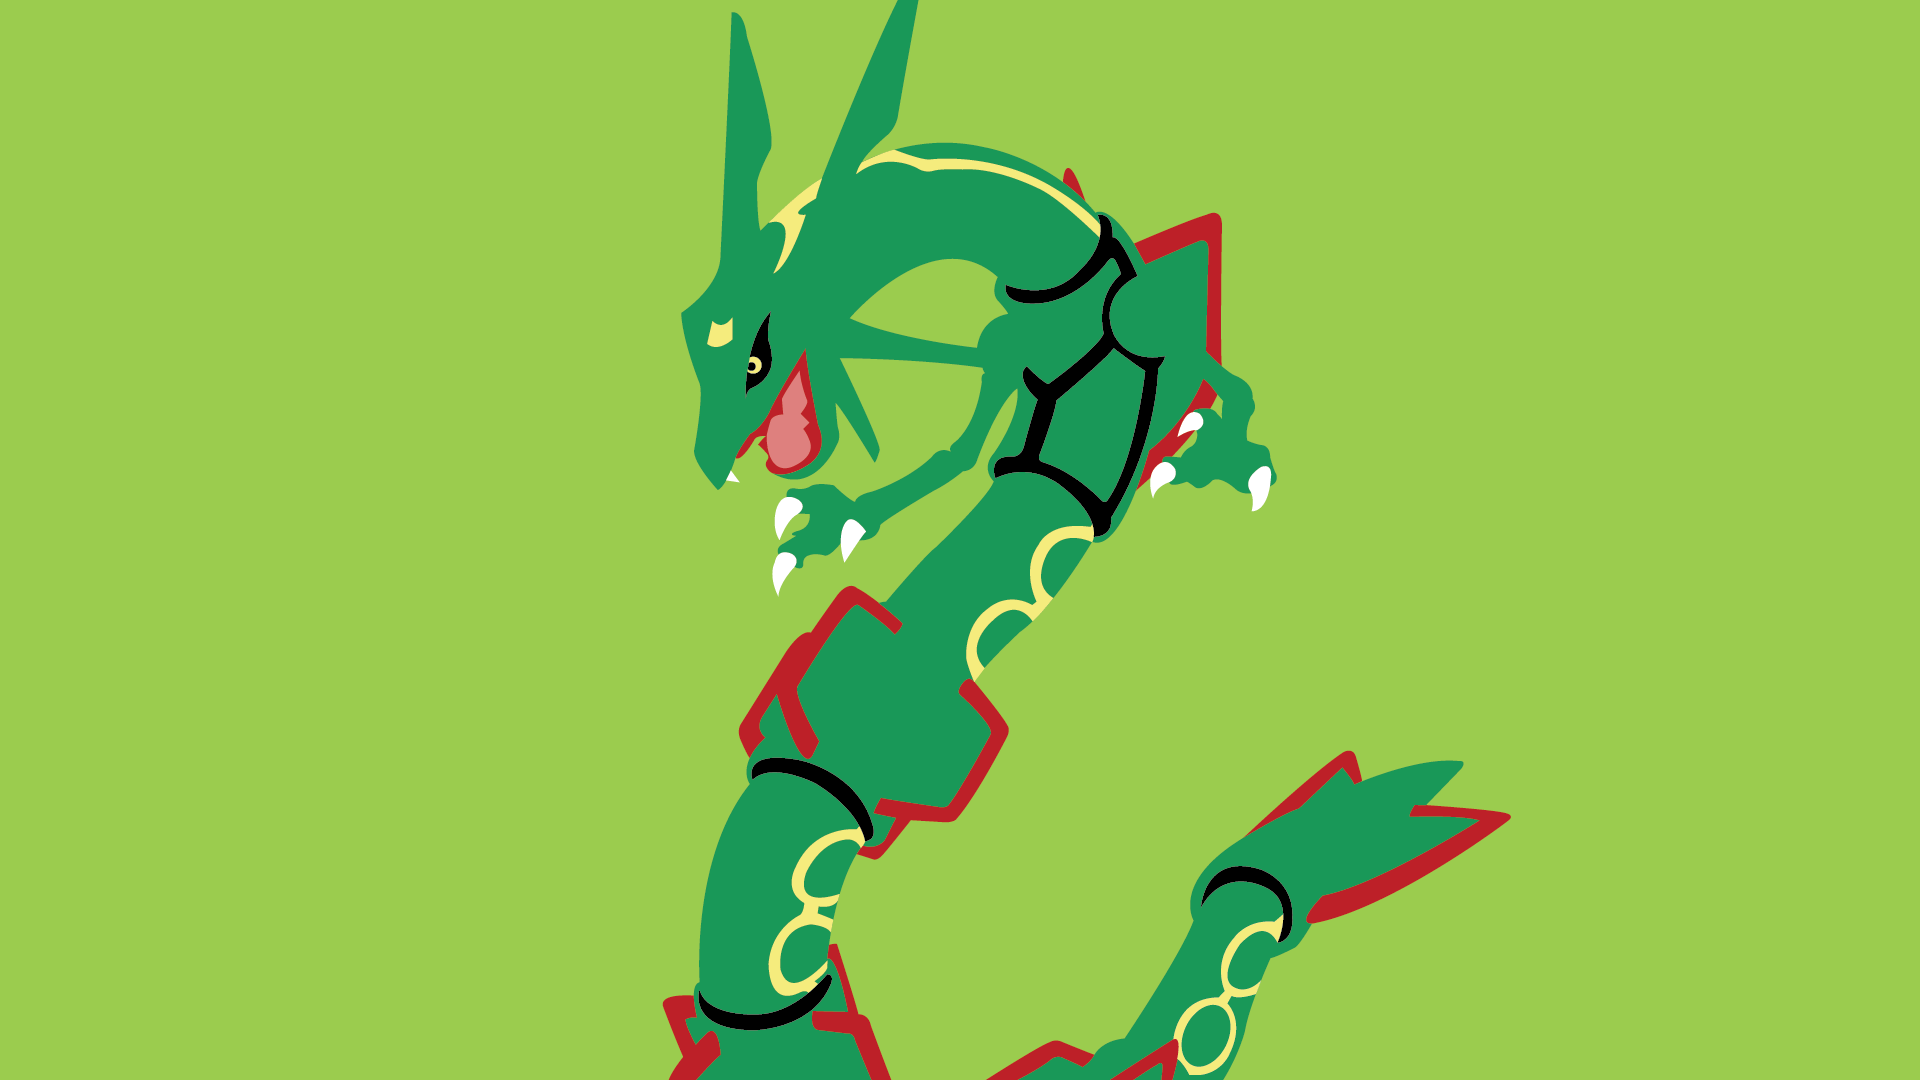 emerald rayquaza wallpapers - photo #23